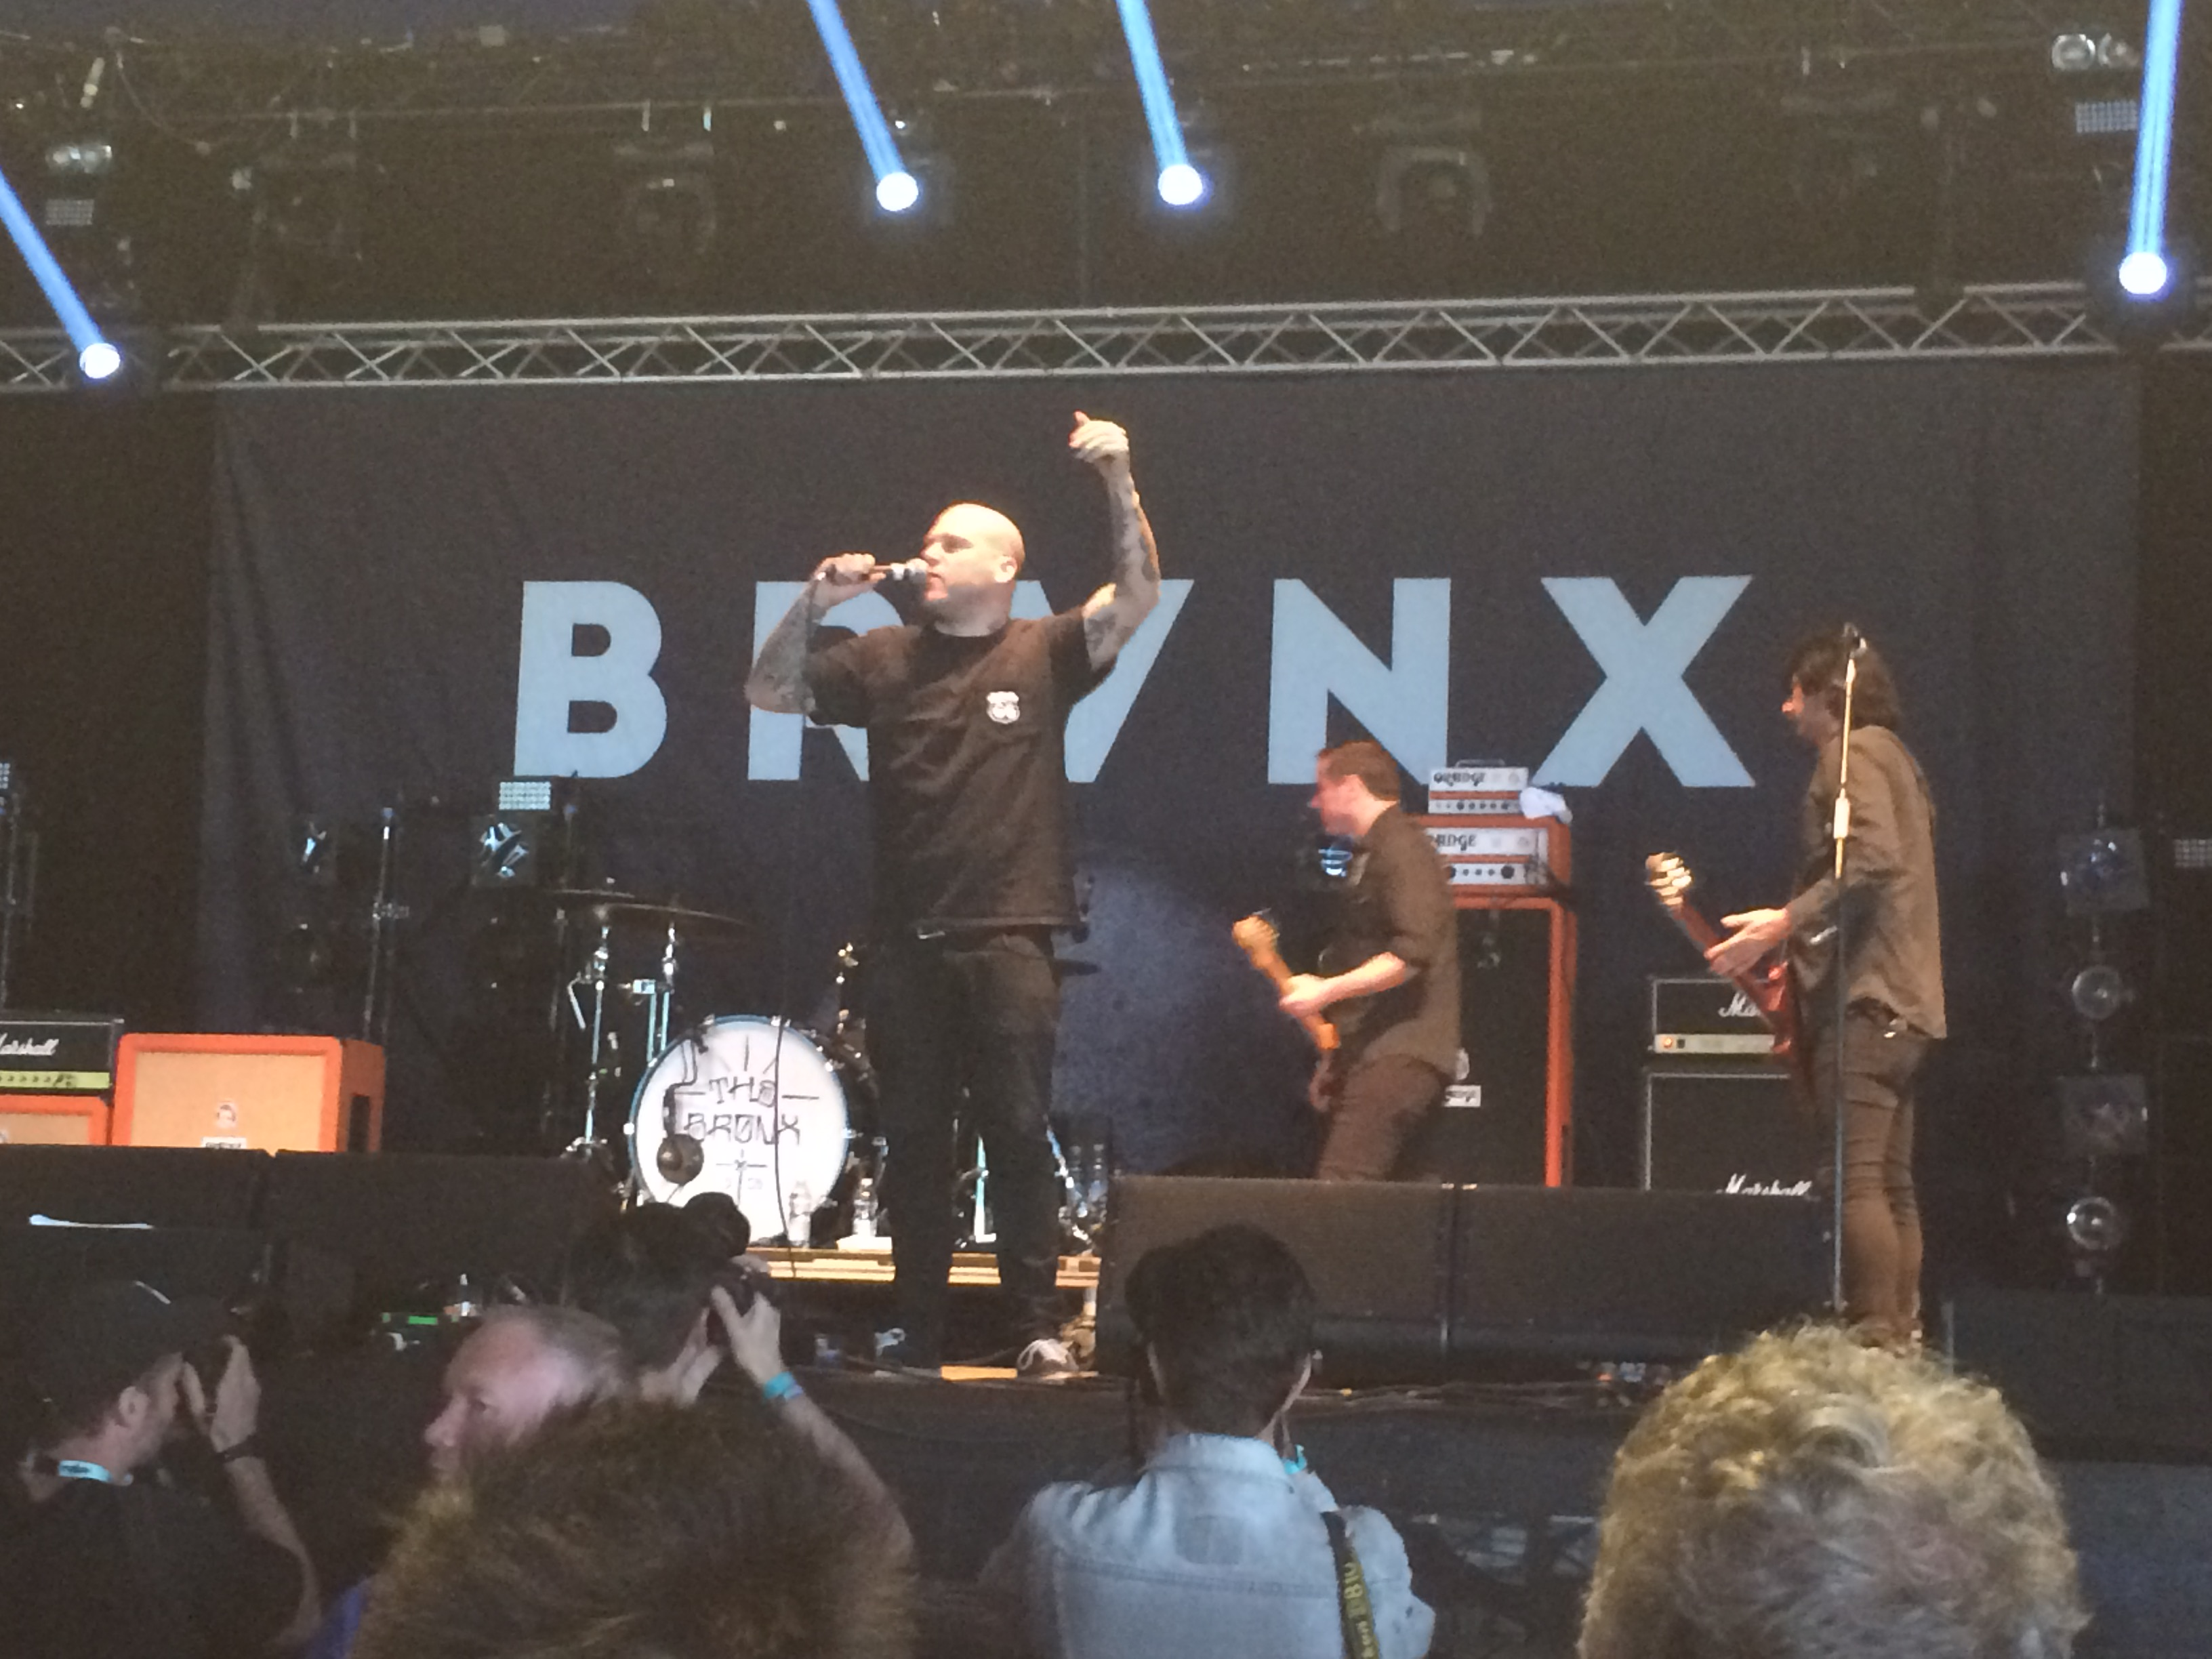 The Bronx Download Festival